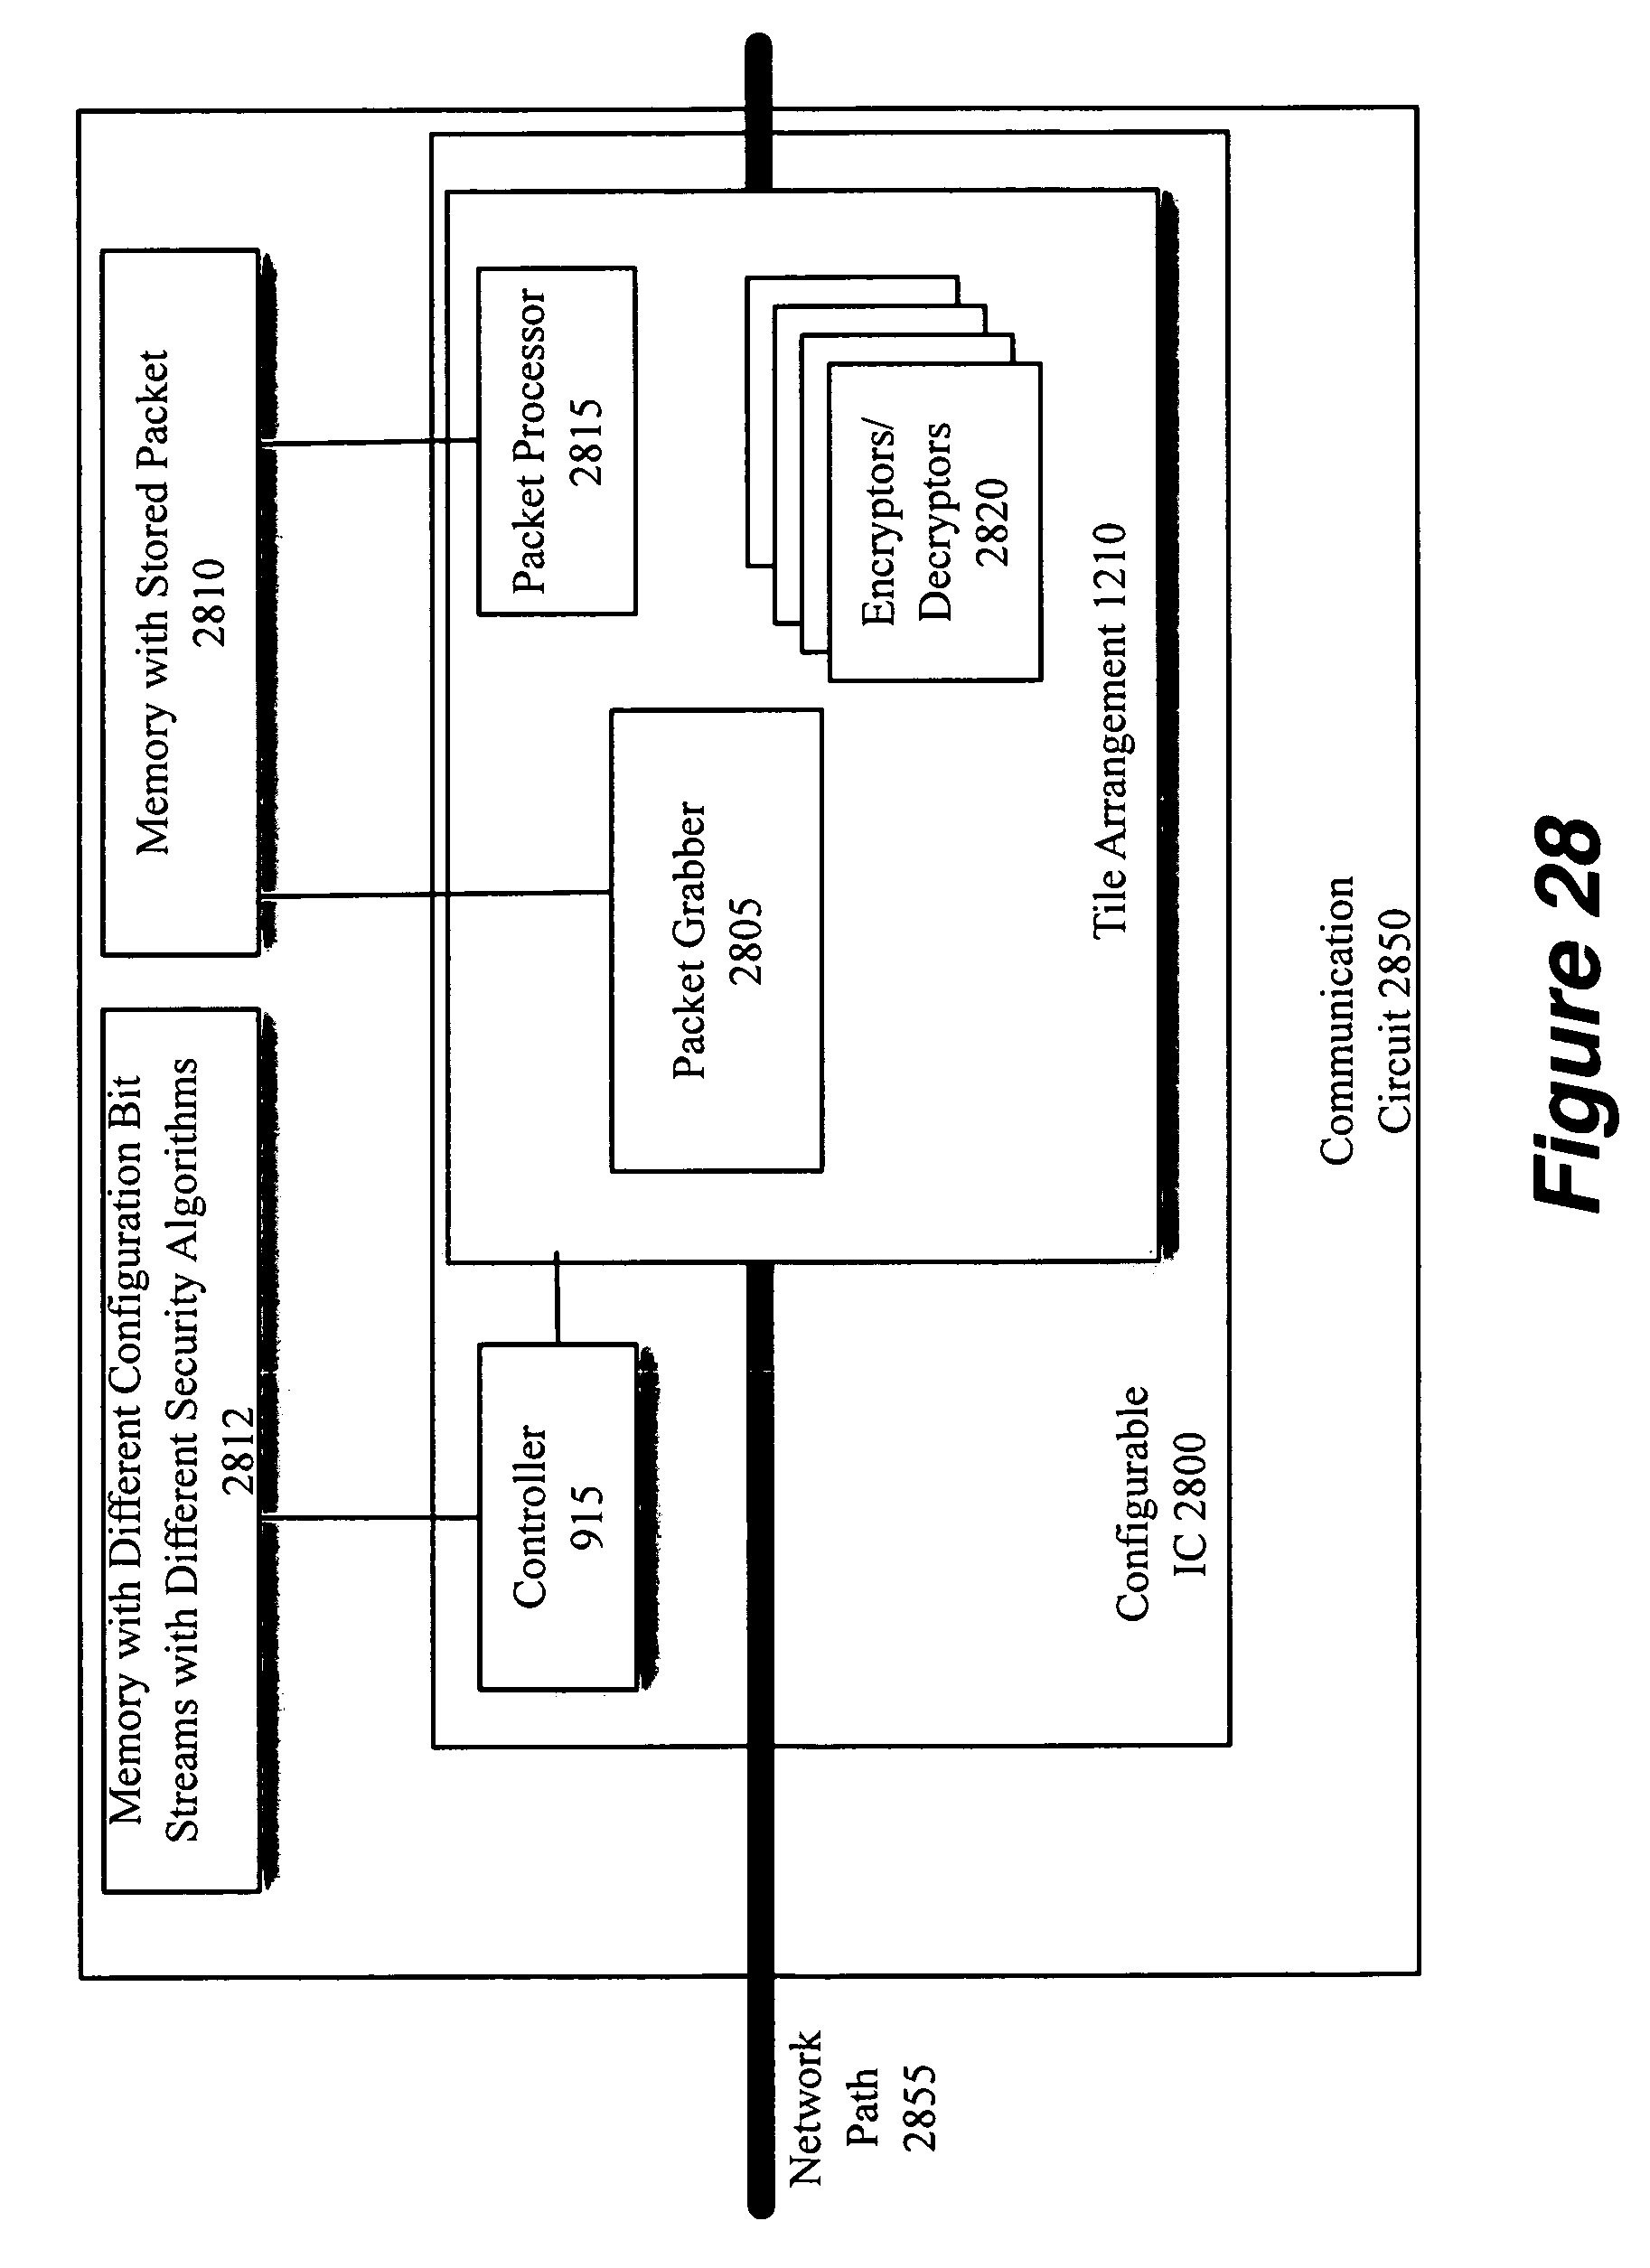 Patente Us7548085 Random Access Of User Design States In A Logic Diagram 8085 Patent Drawing